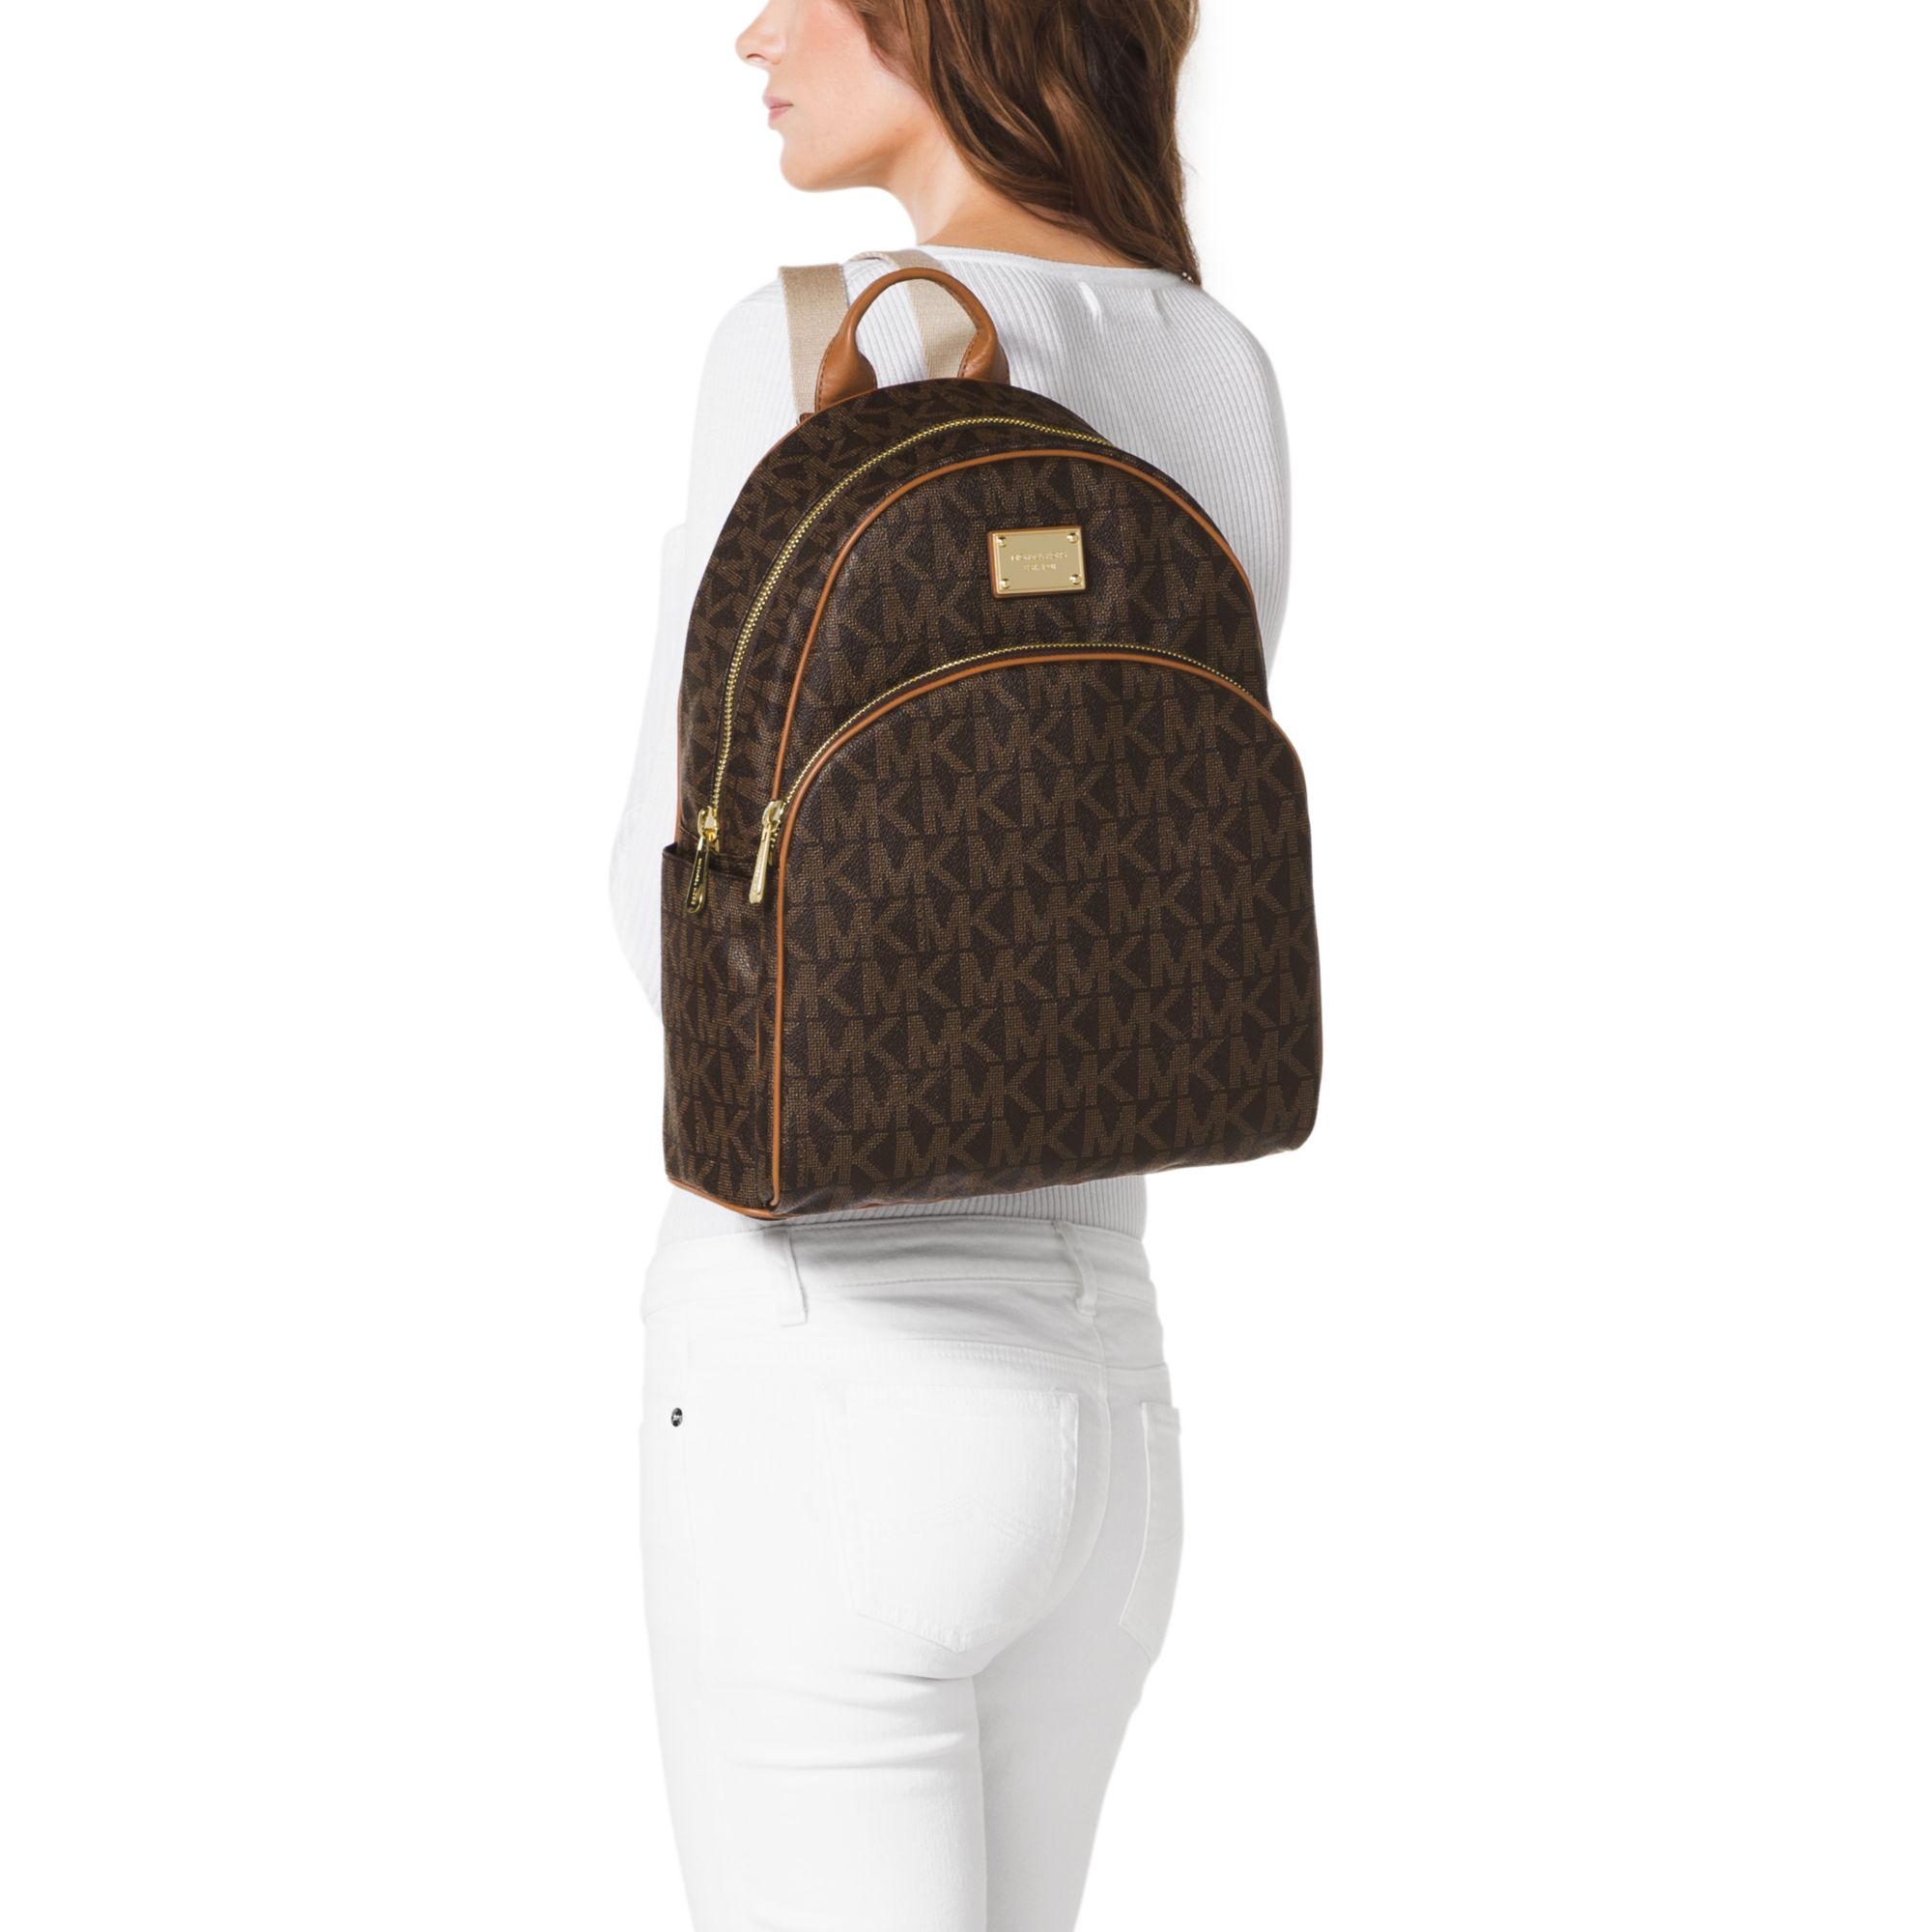 00ad3250eb10 cheap lyst michael kors jet set travel logo backpack in brown 07116 984cd